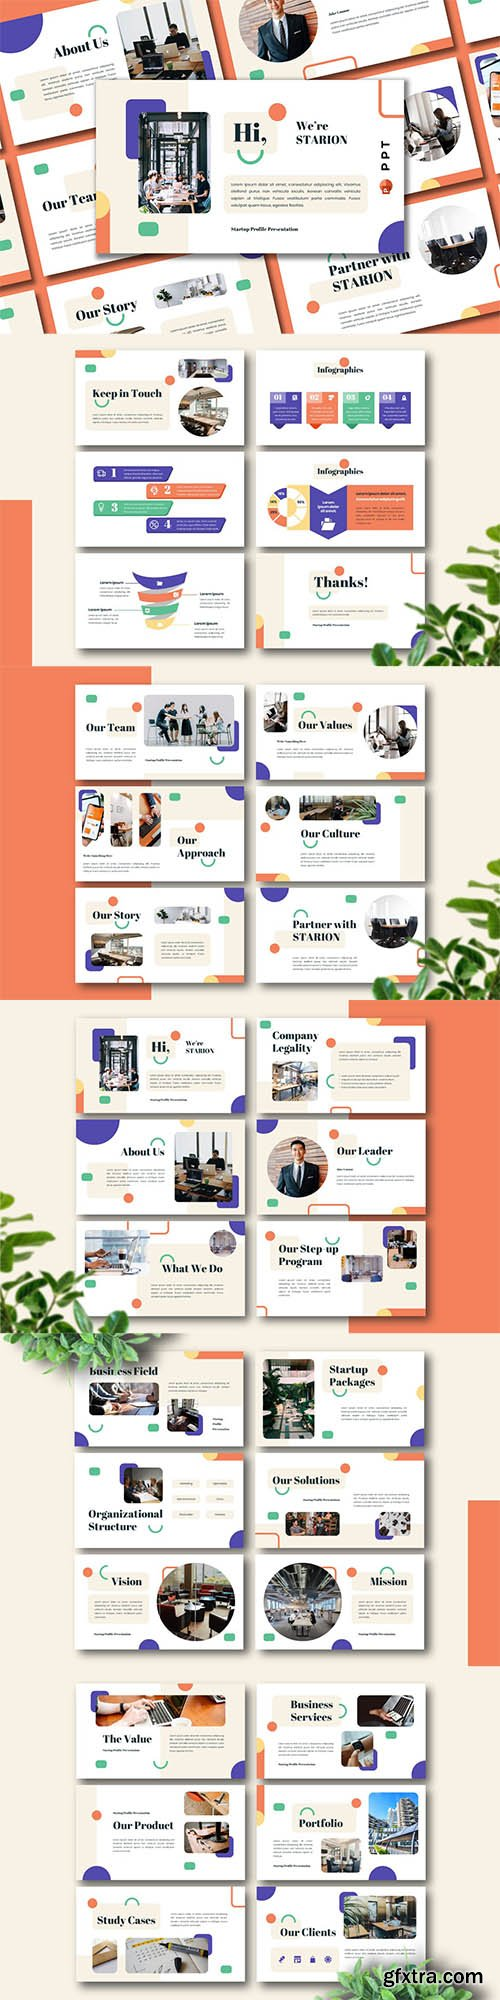 STARION - Startup Profile Powerpoint, Keynote and Google Slide Template